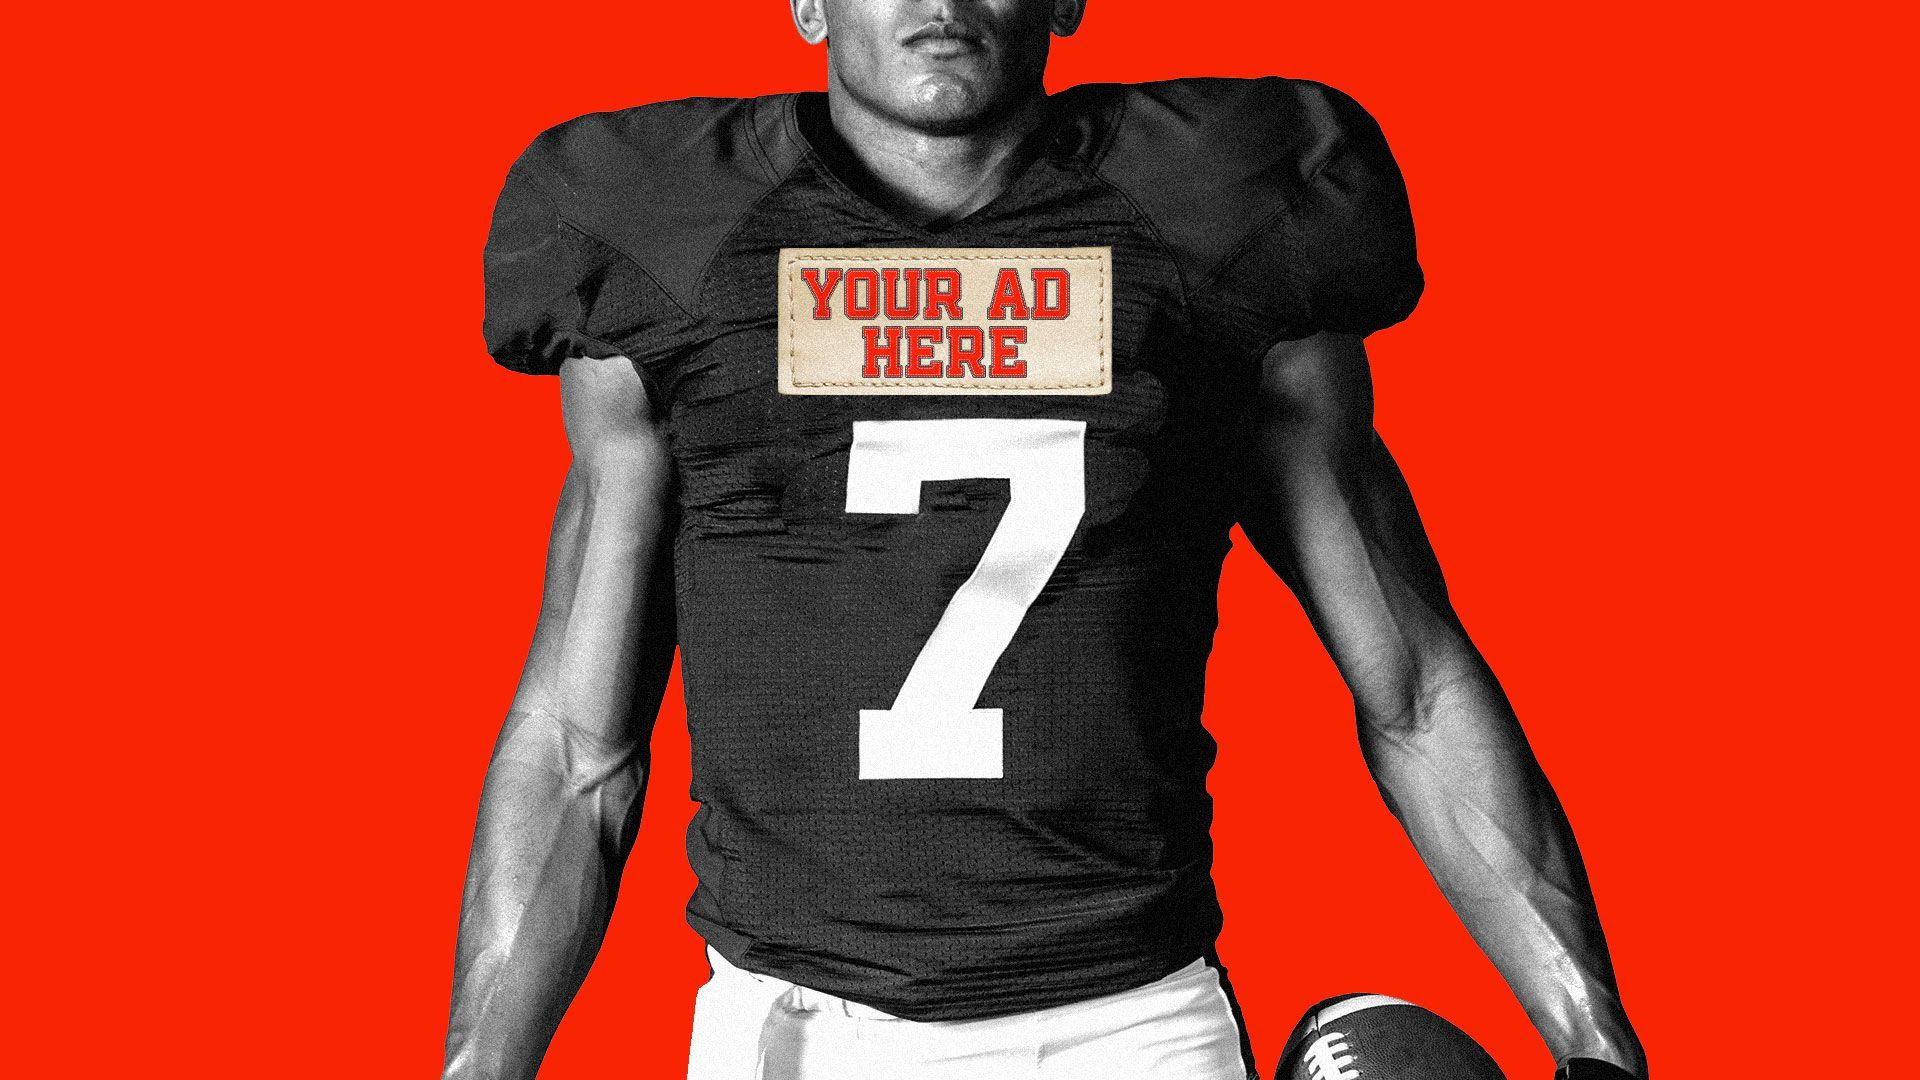 Illustration of a footbal player with jersey that says your ad here